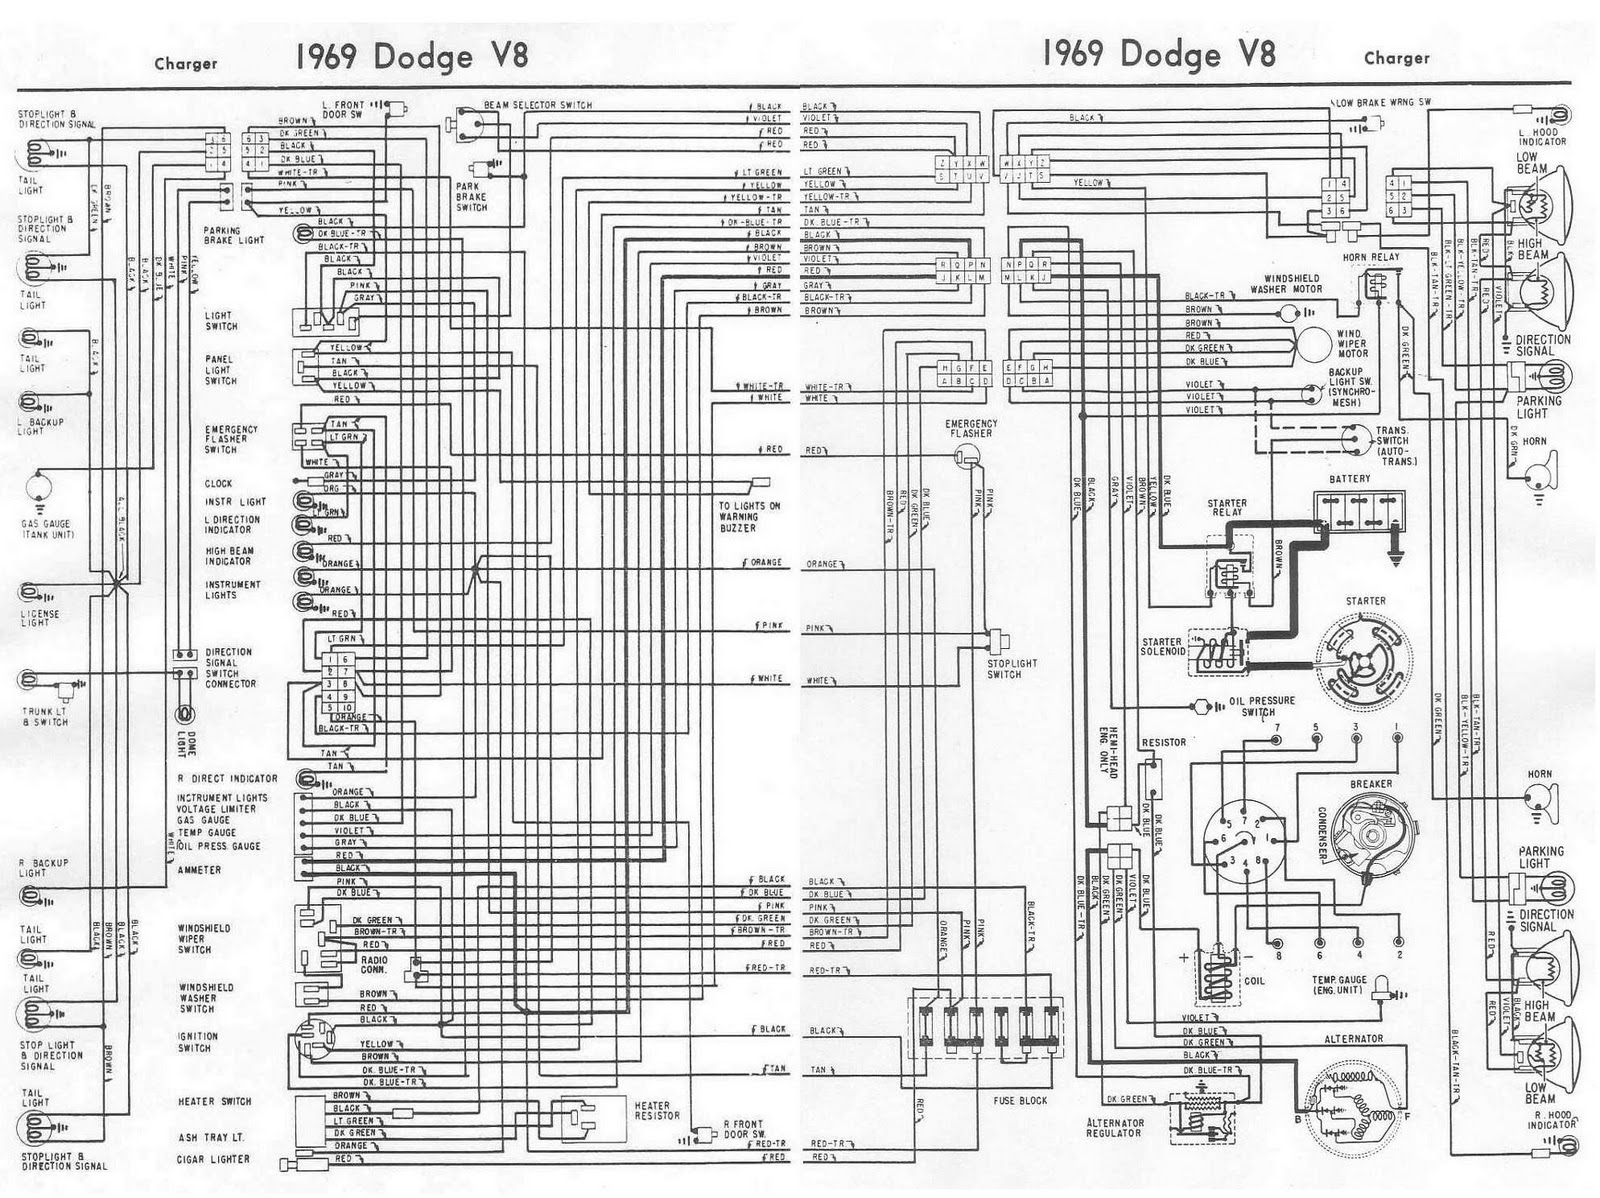 59 ford f100 wiring harness   27 wiring diagram images